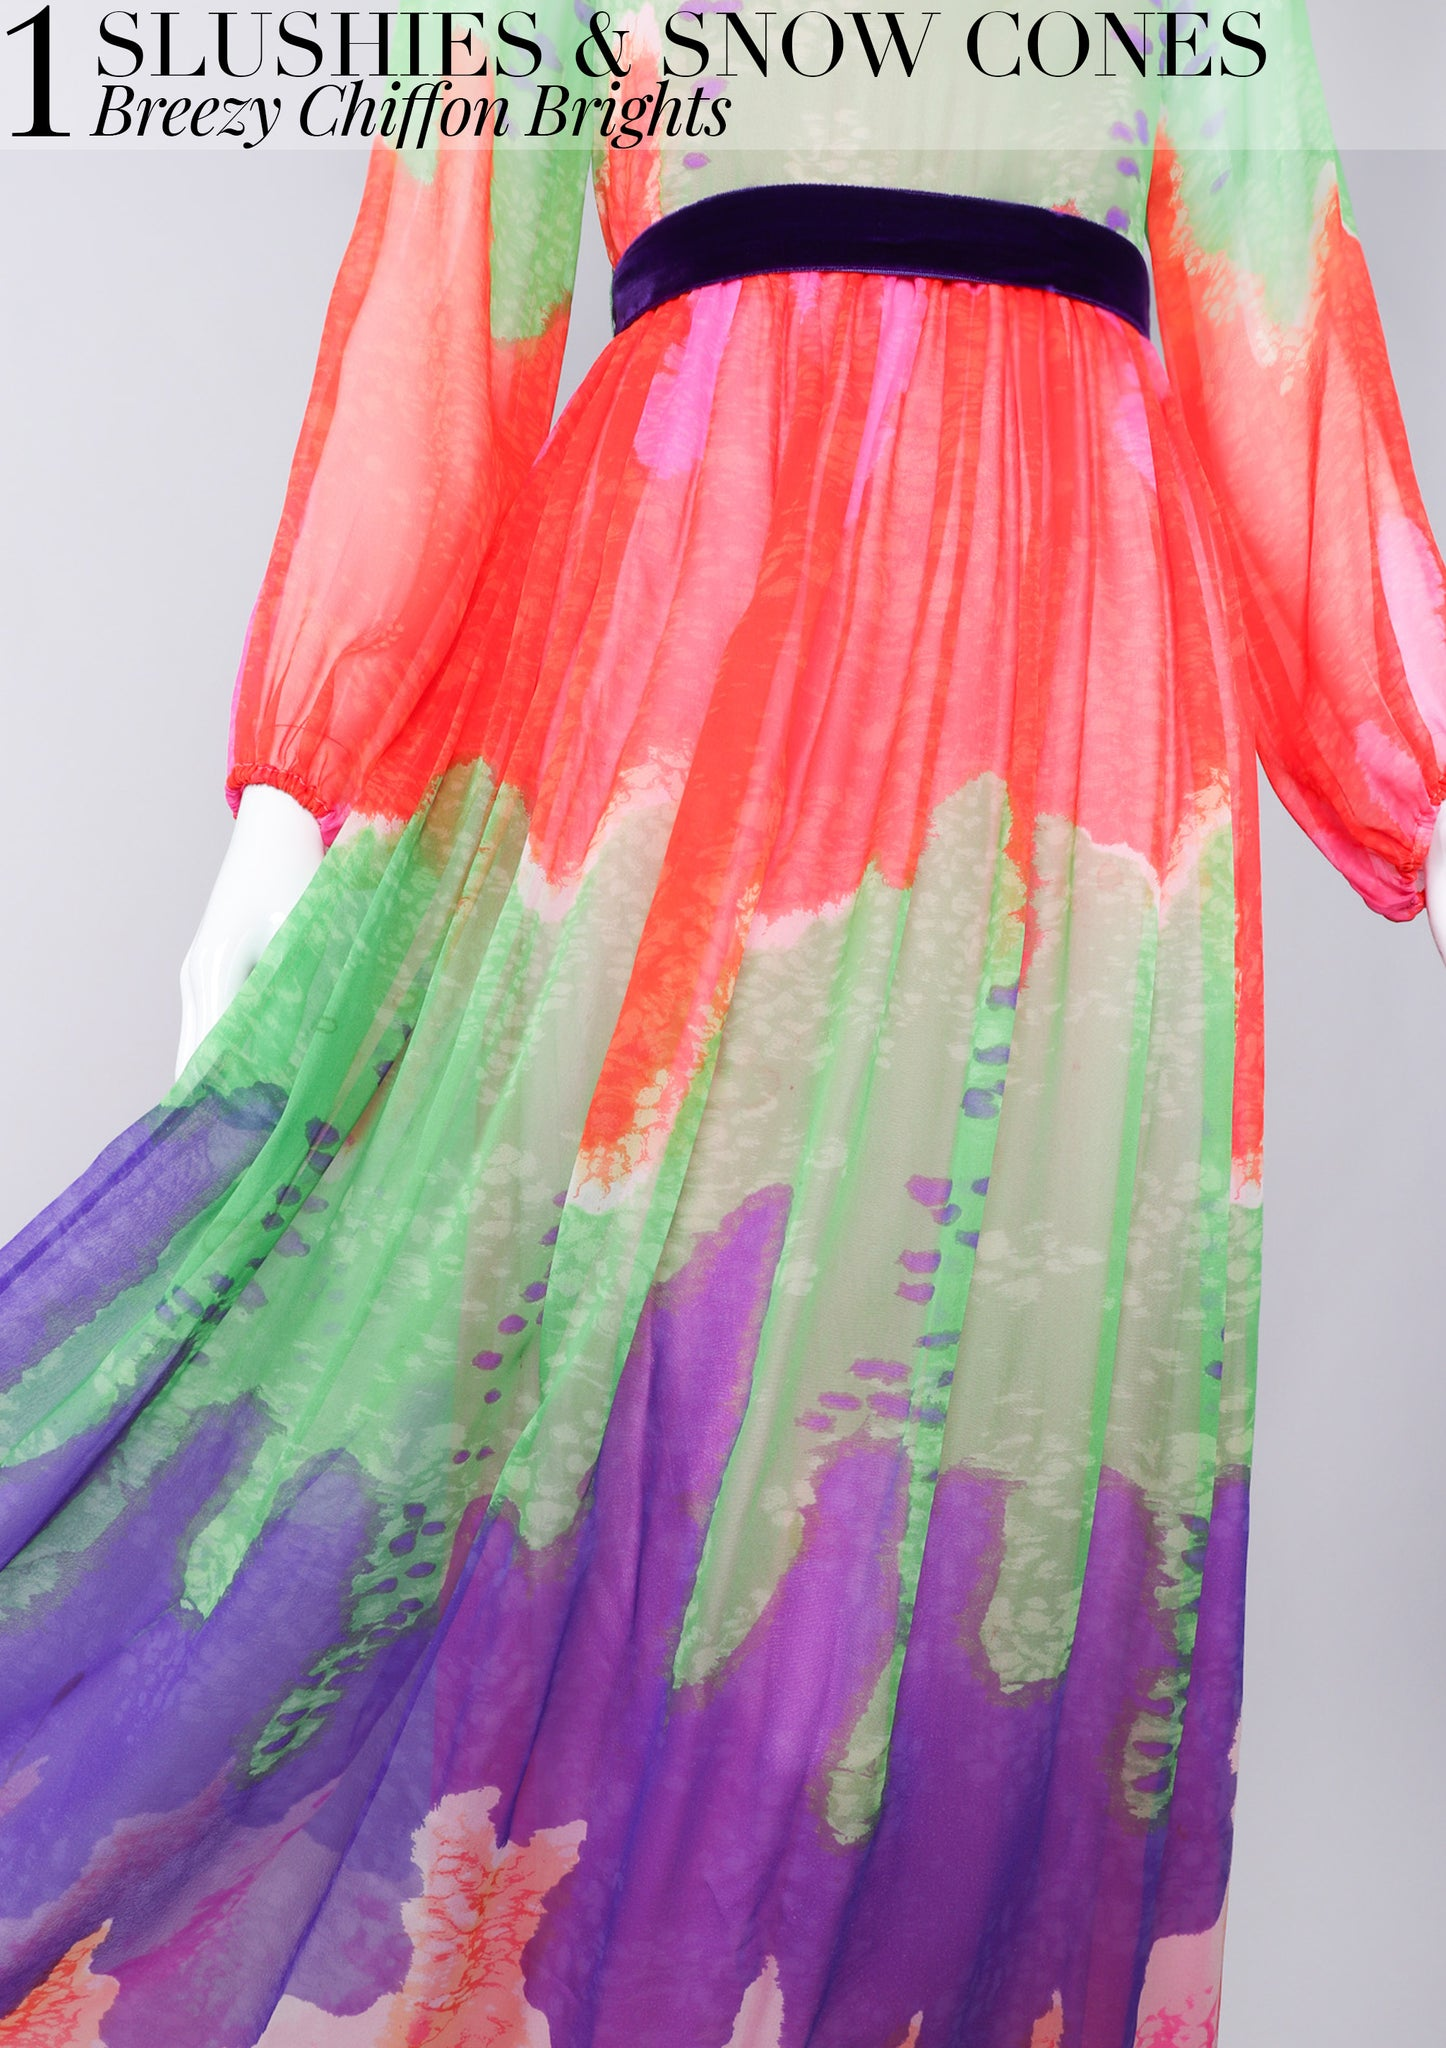 RECESS Los Angeles Vintage Dress Code Ice Cream Dream Slushie Slurpee Chiffon Dress